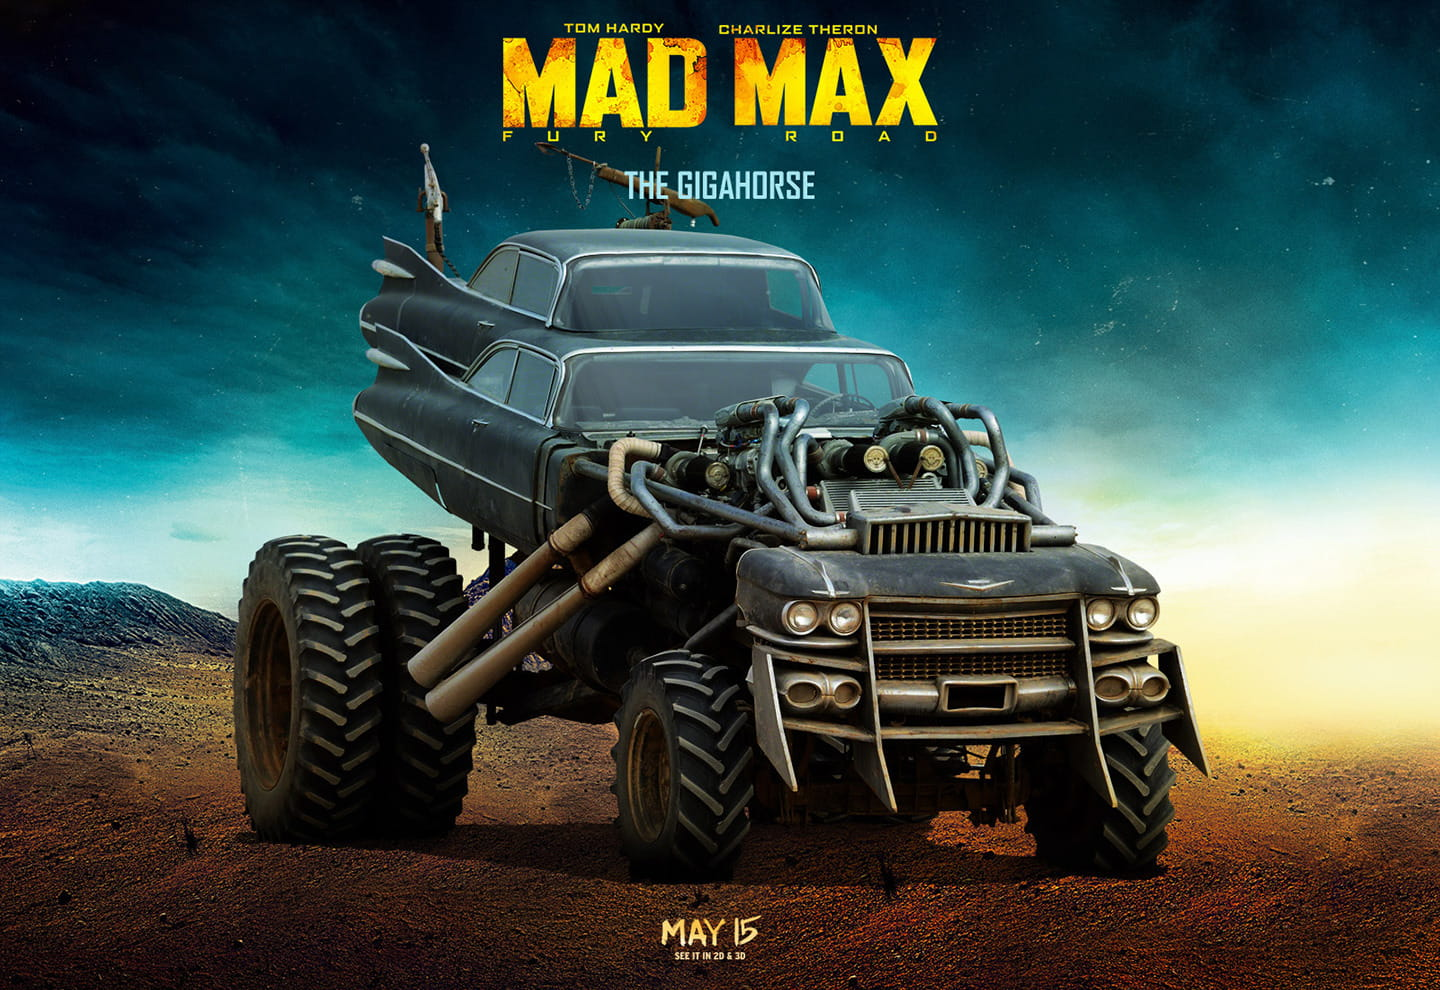 madmax_gigahorse-1440px